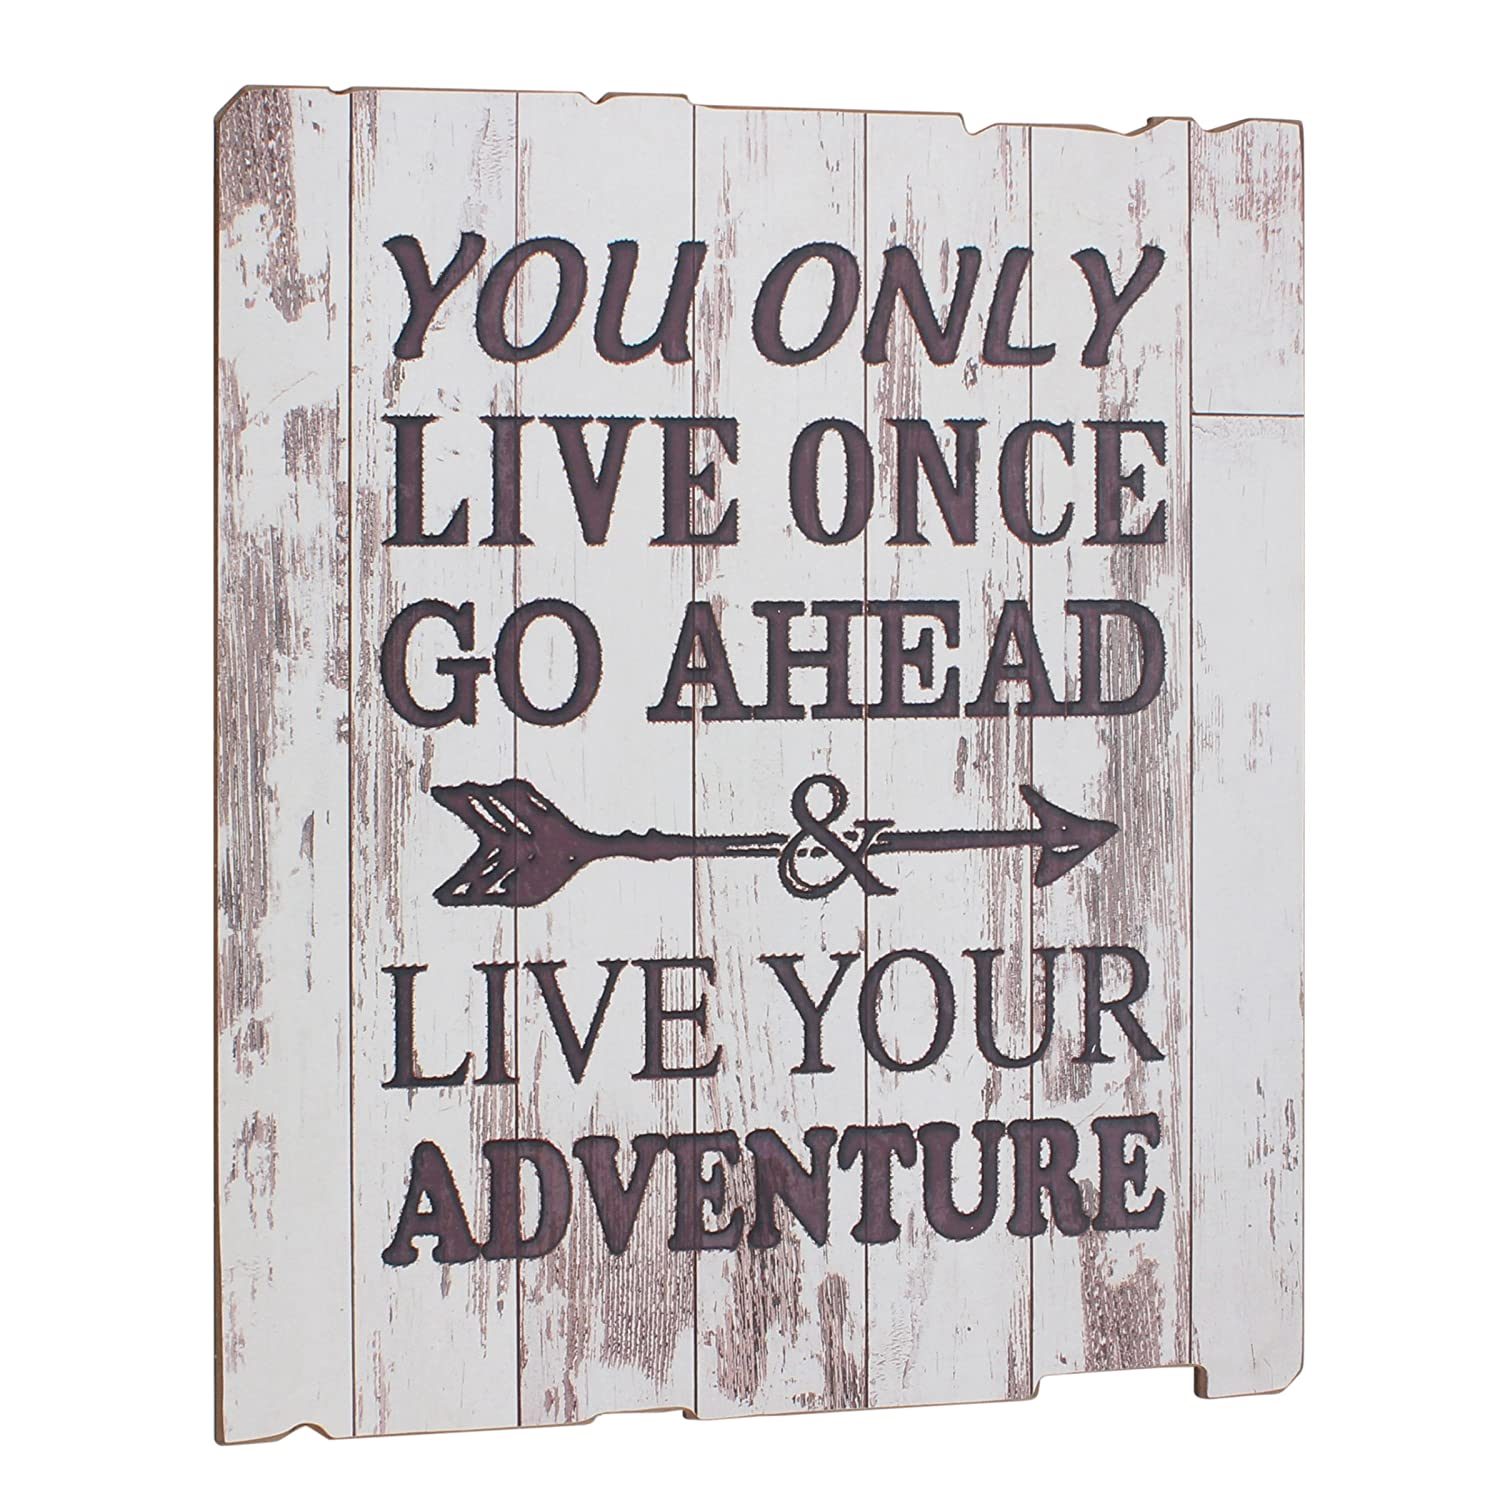 "Stonebriar Rustic Wooden Worn White Painted ""Live Your Adventure"" Wall Art with Attached Hanger, Inspirational Wall Decor, Artwork for Entryway, Office, Bedroom, and Living Room"